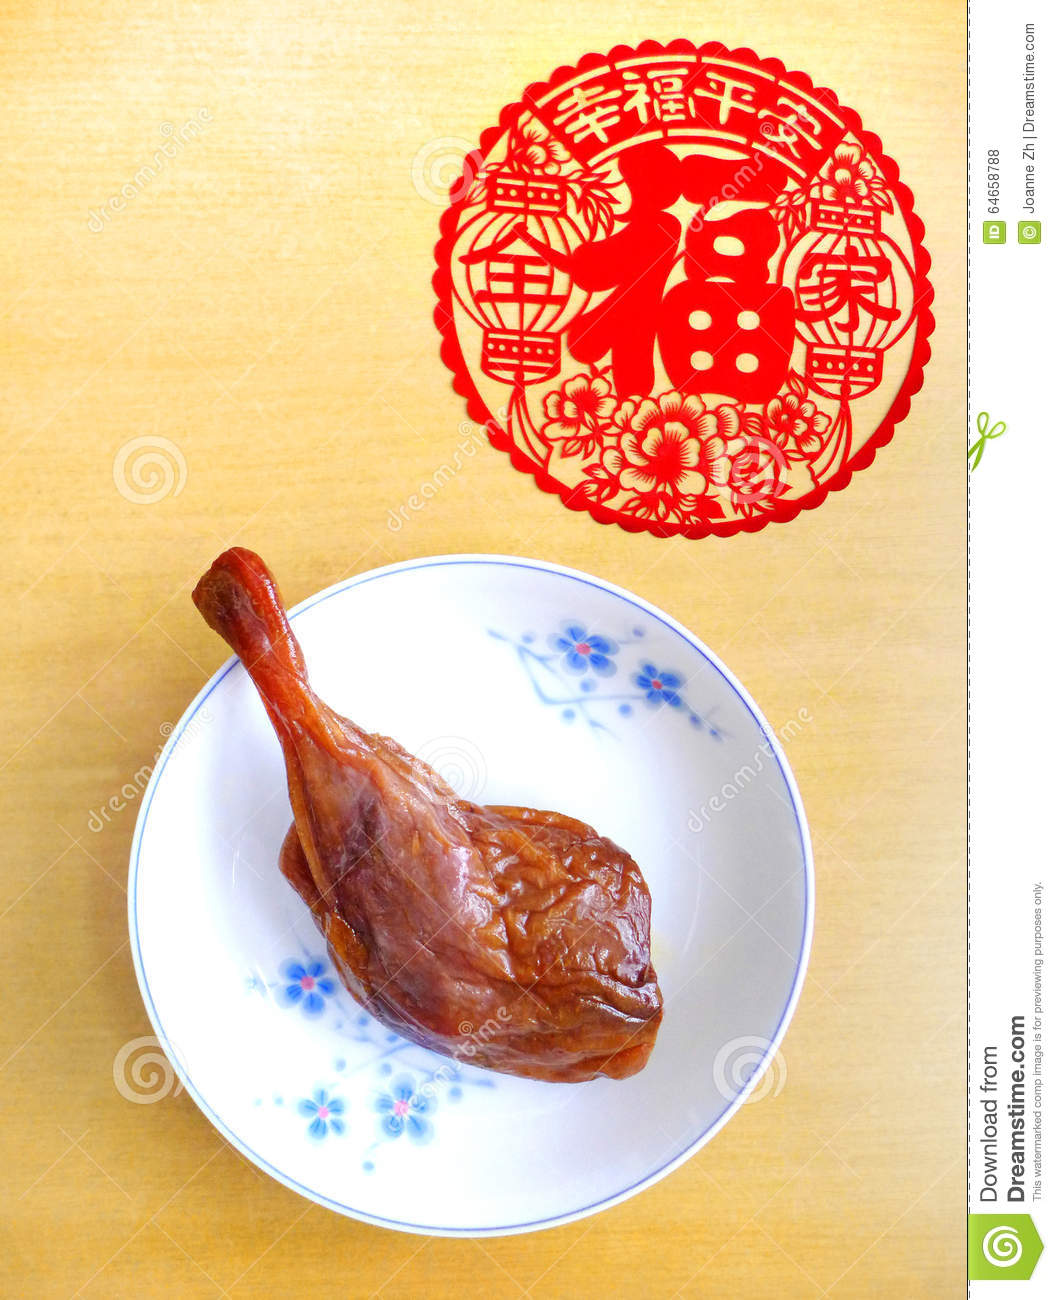 Cured duck leg, chinese festive food